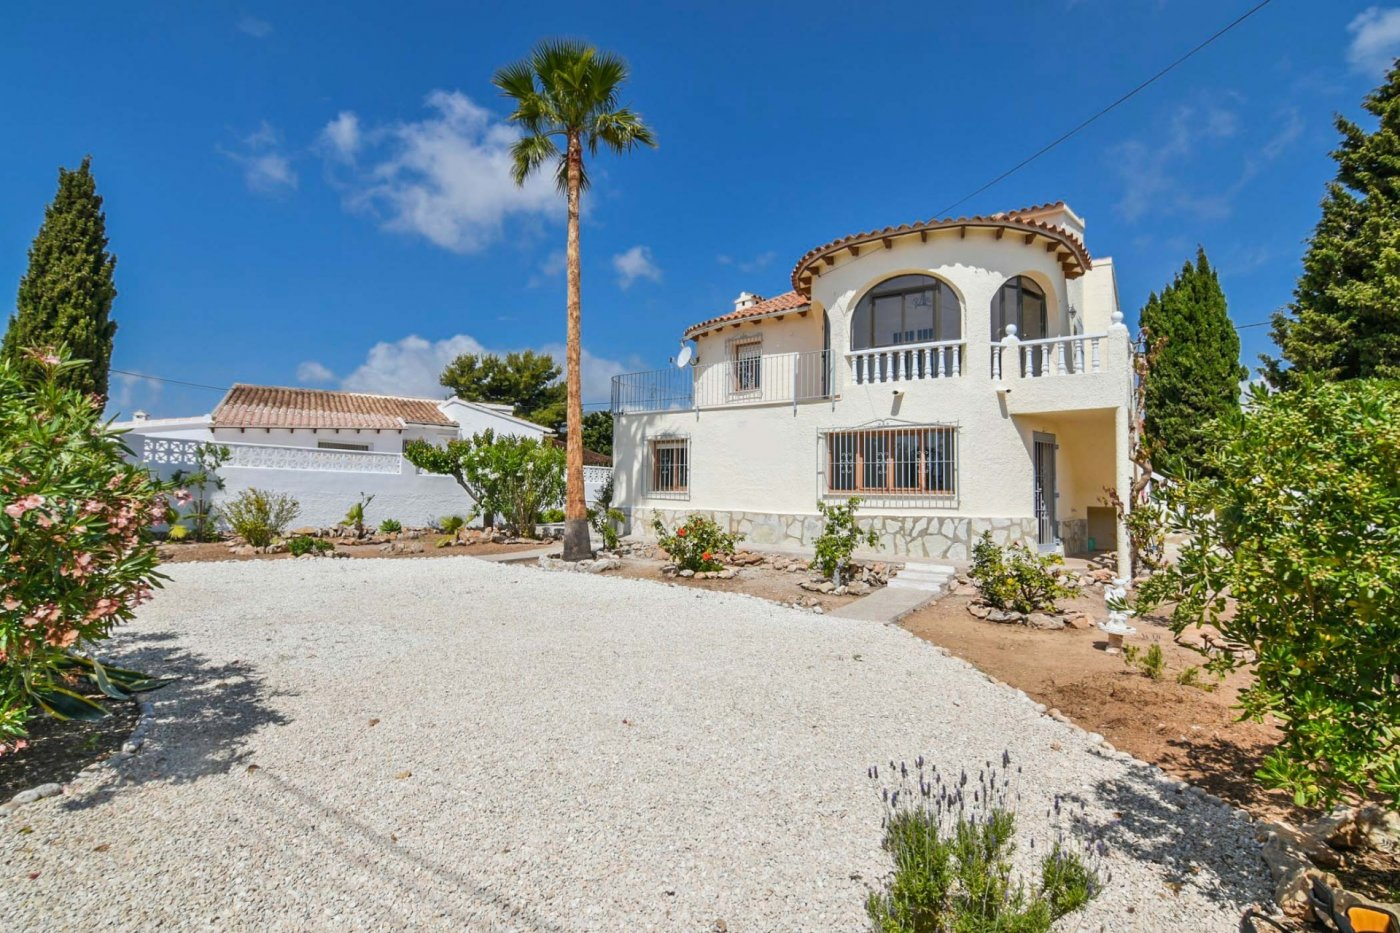 Villa - Ready To Move And Live - Ortenbach - Calpe